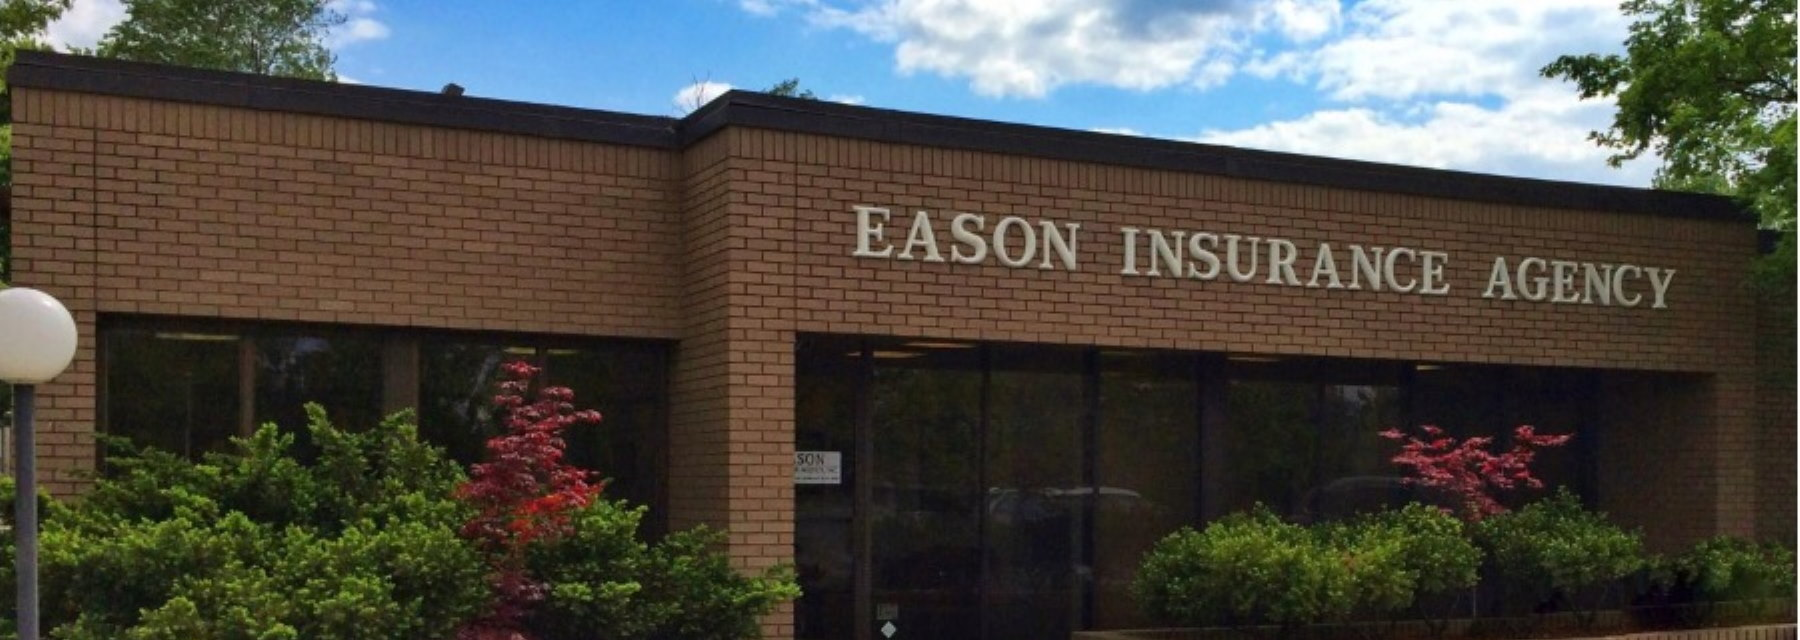 front of Eason Insurance Agency building